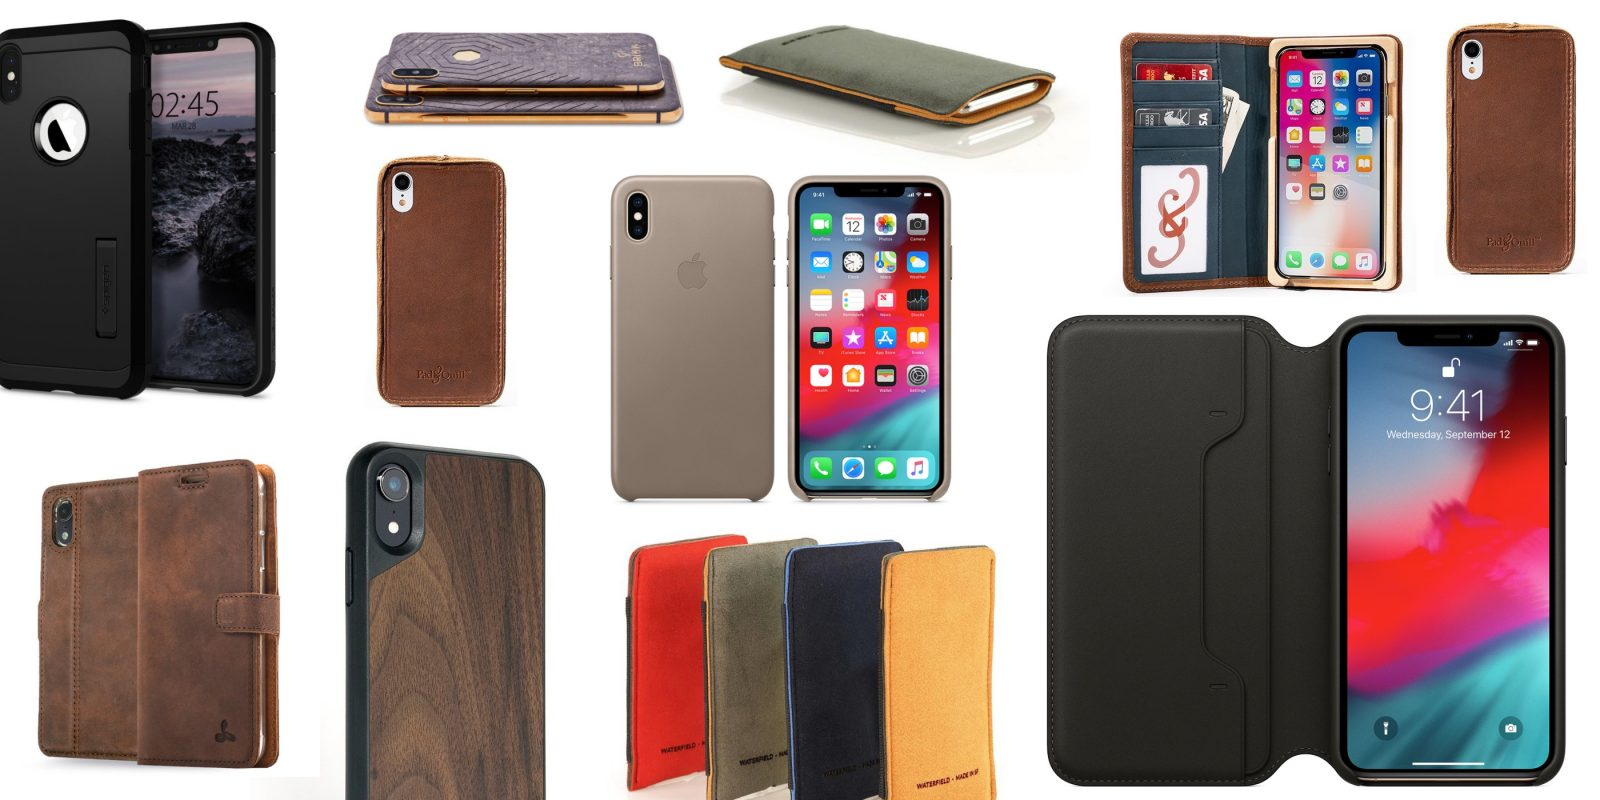 Best new iPhone XS, XS Max and XR cases available now - 9to5Mac